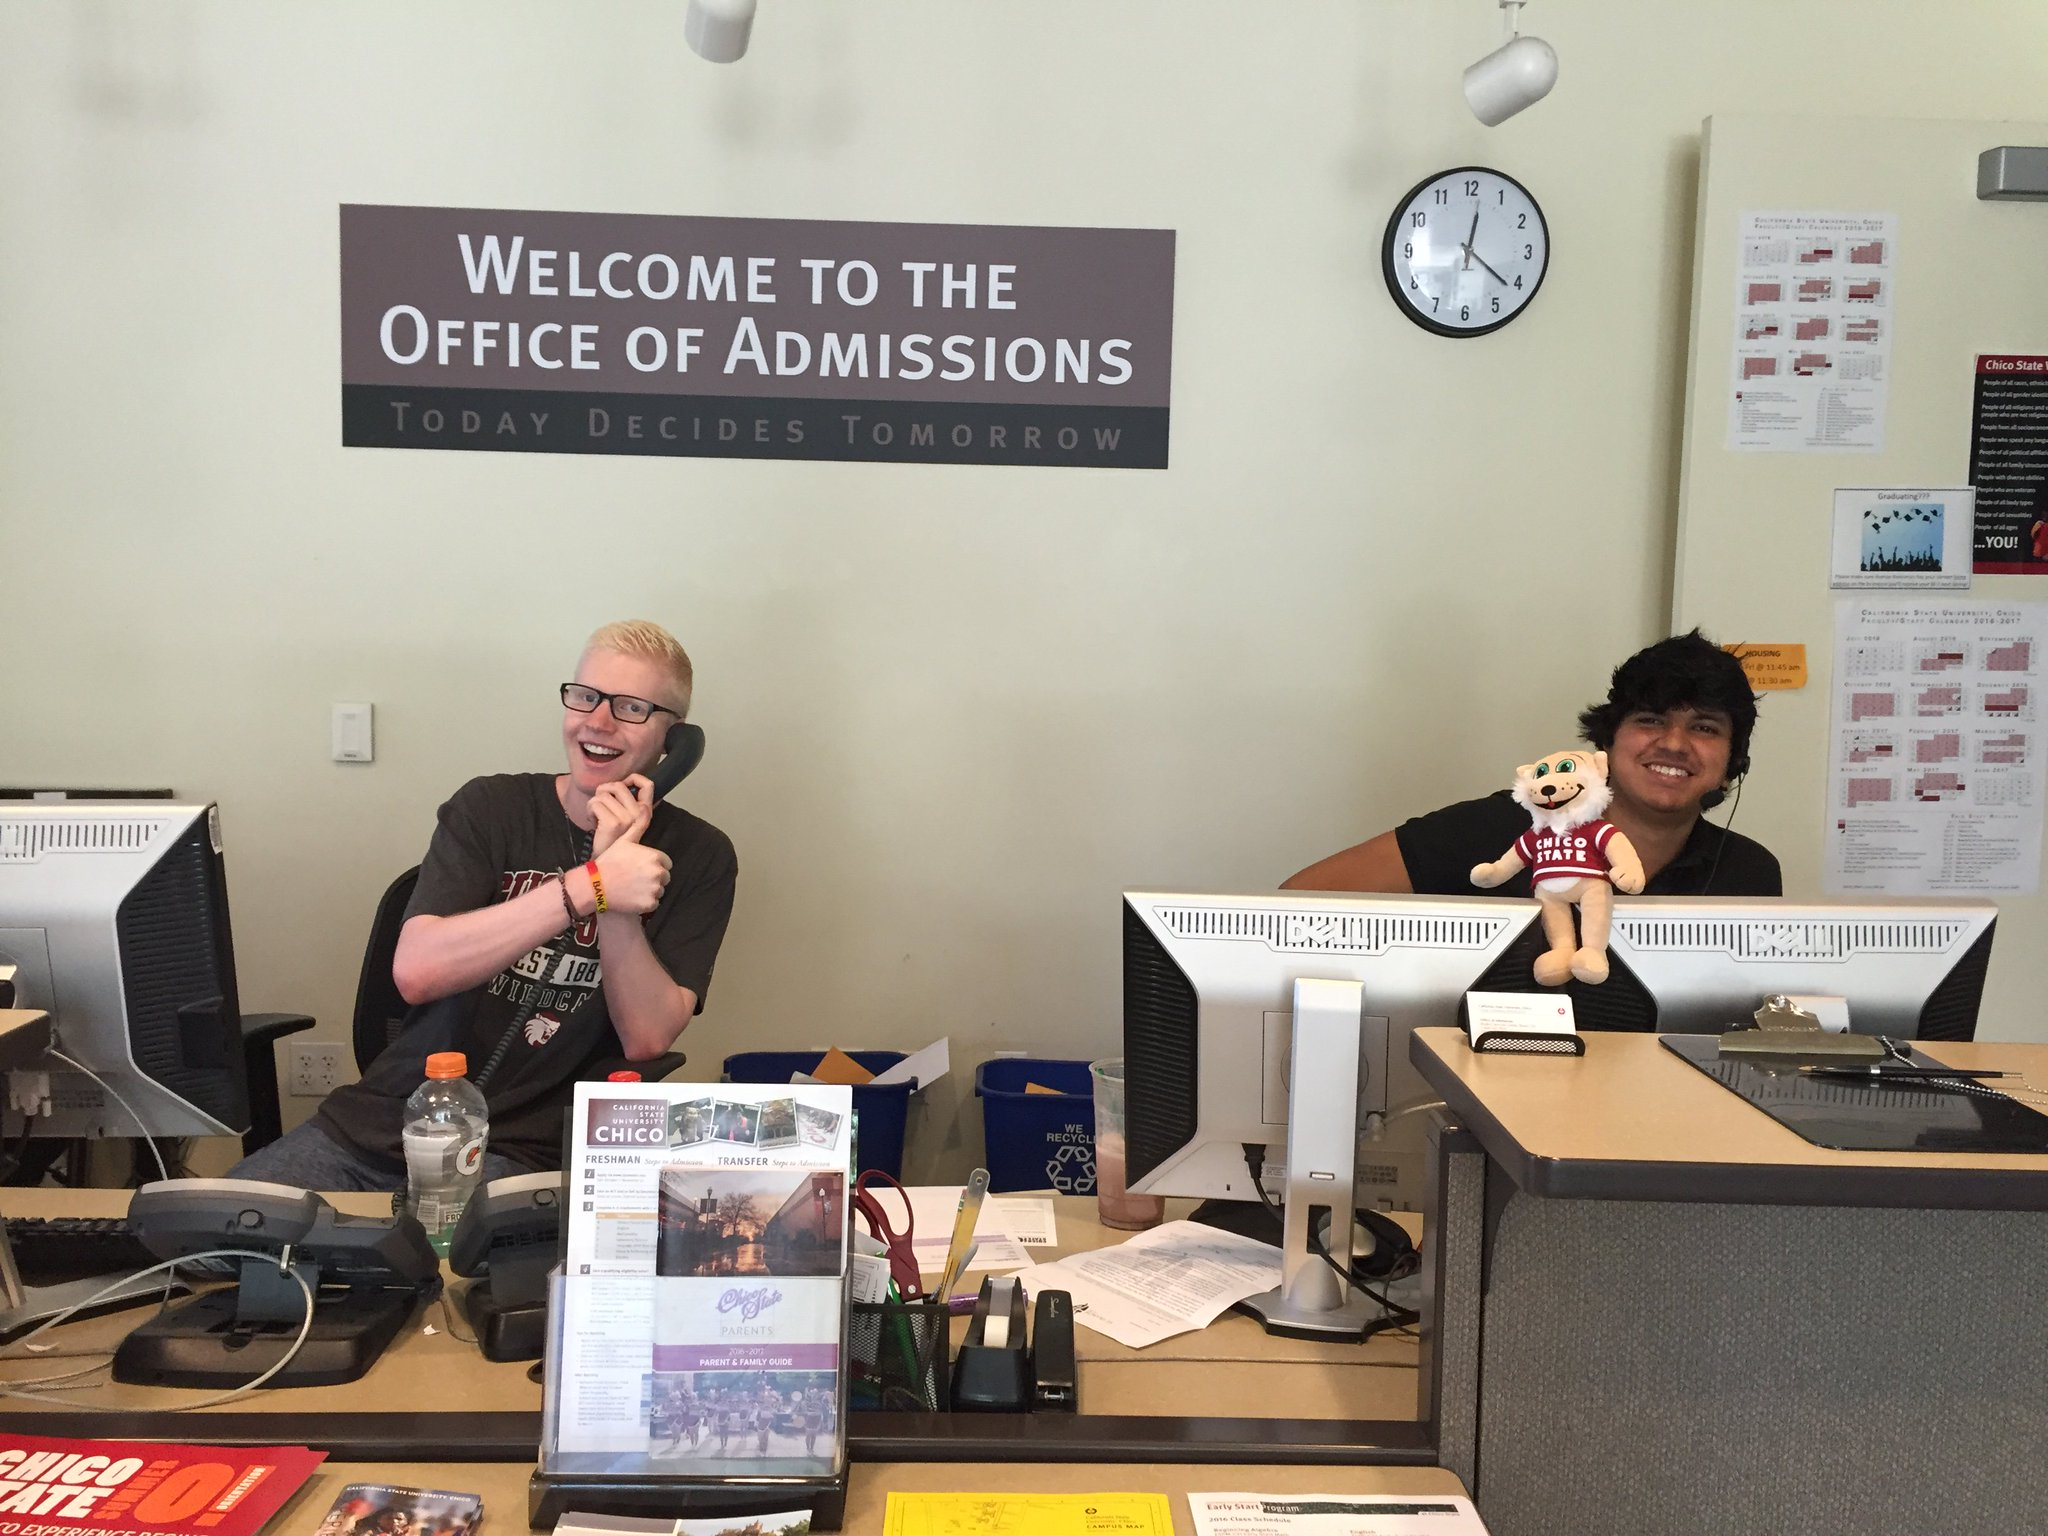 CSU Chico is #MyTopCollege b/c we have awesome fellow wildcats @ our front desk that are ready to help you! https://t.co/xKUV20h1dH